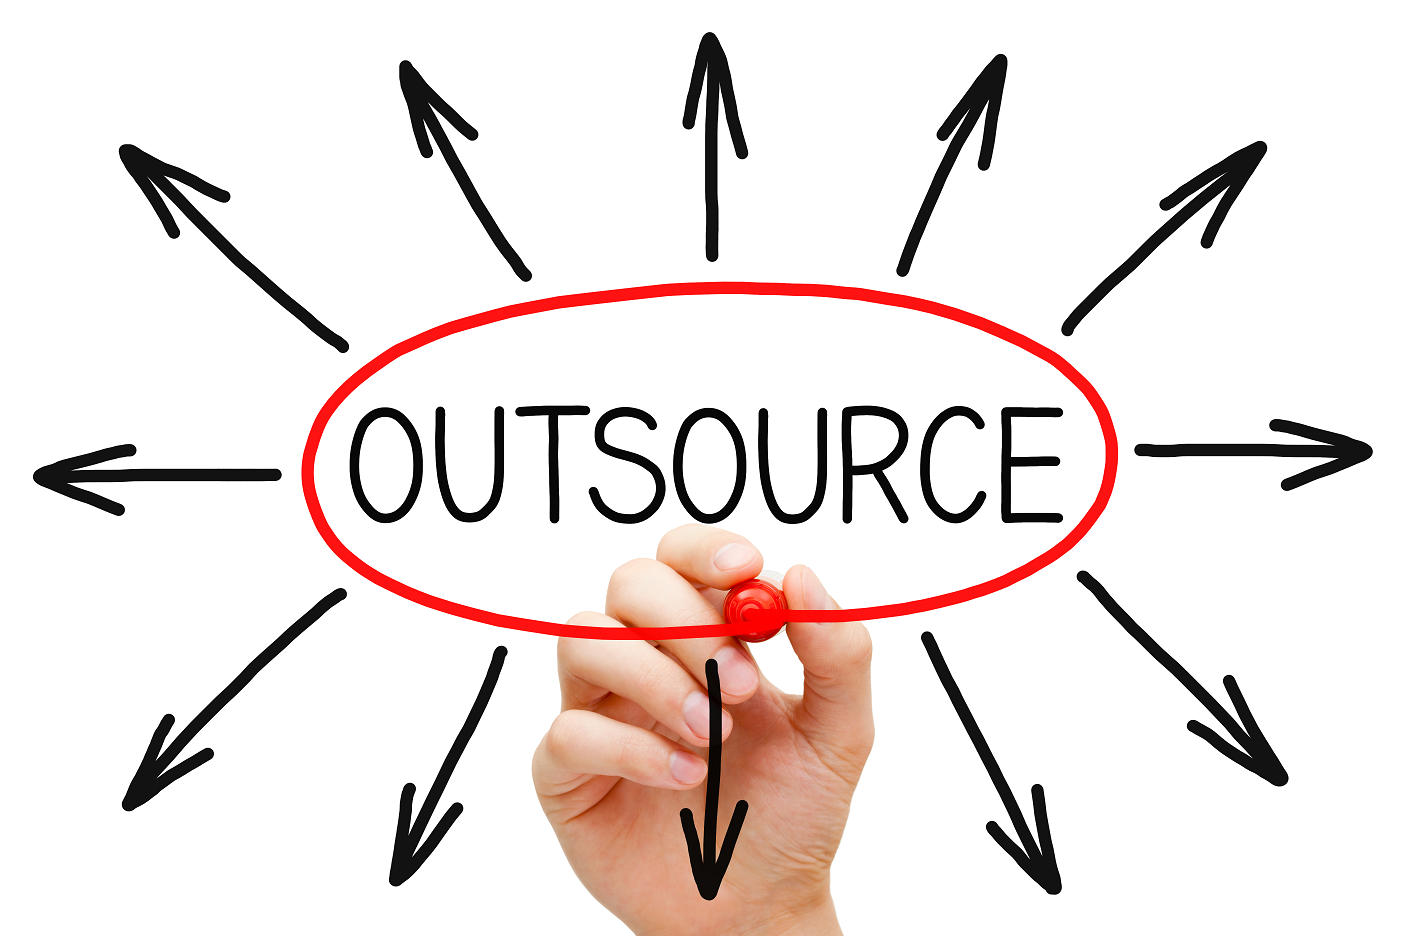 Onshore vs offshore outsourcing